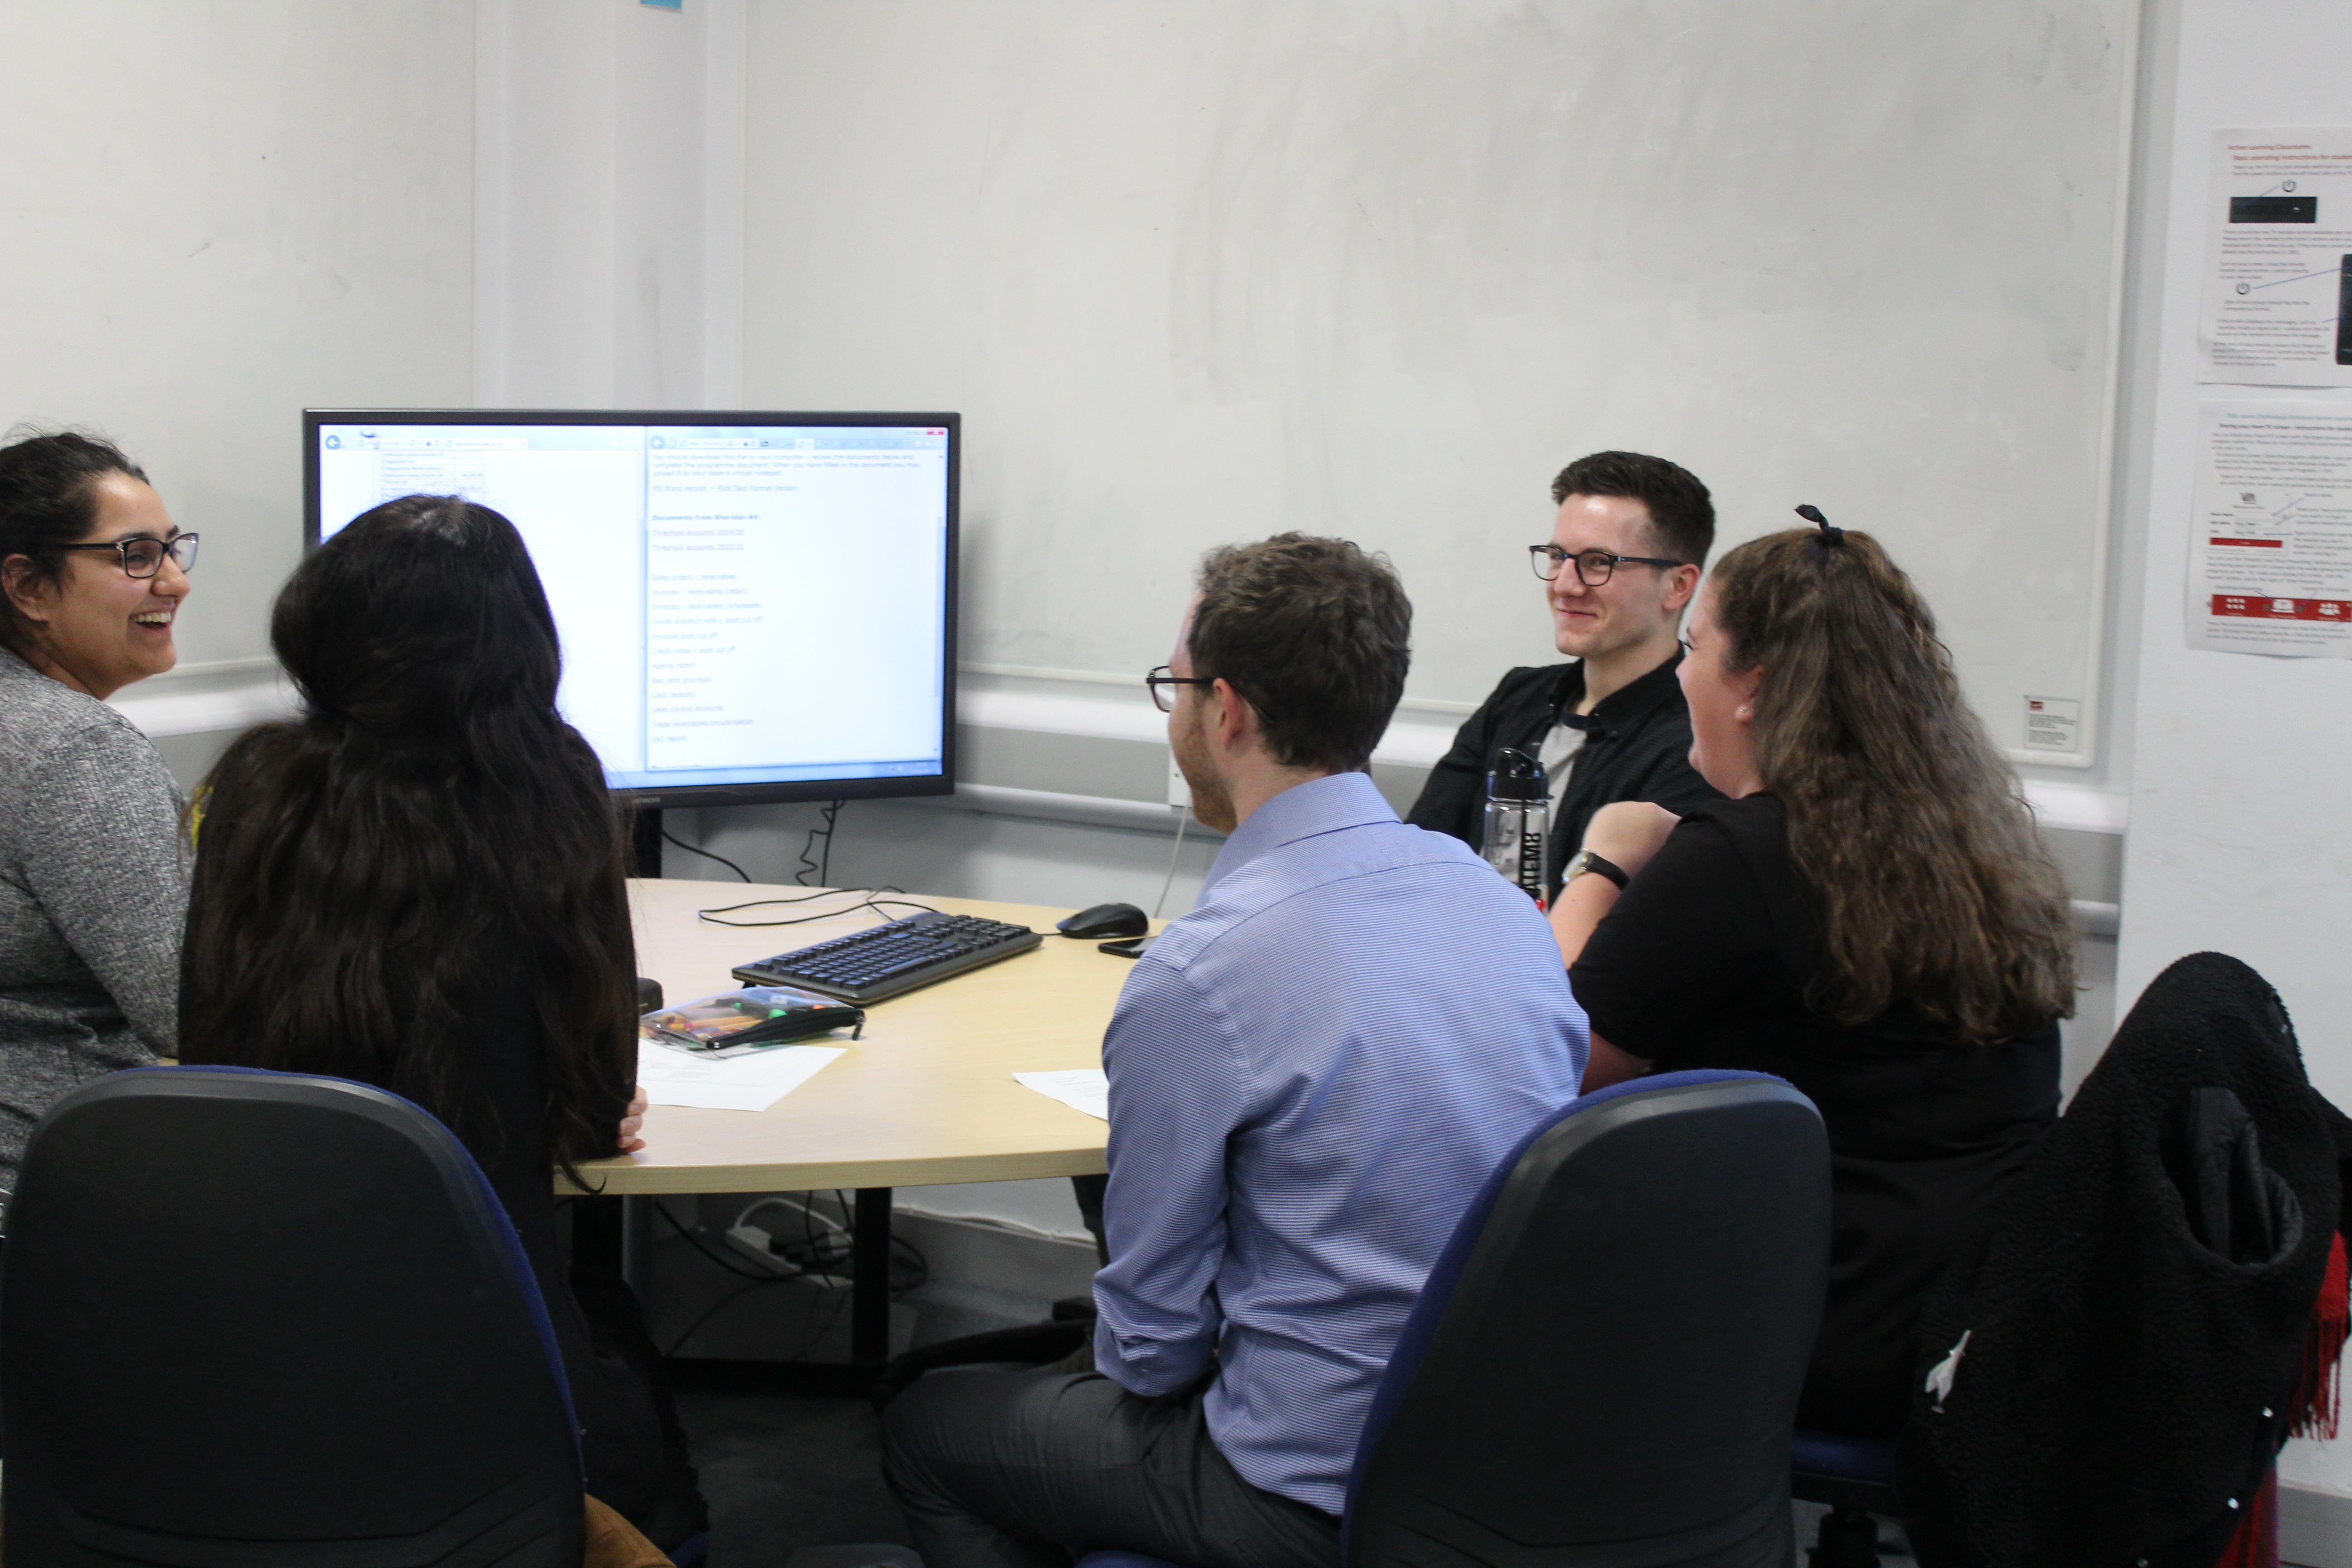 Grant Thornton, Chartered Accountants help final year students with their online audit simulations